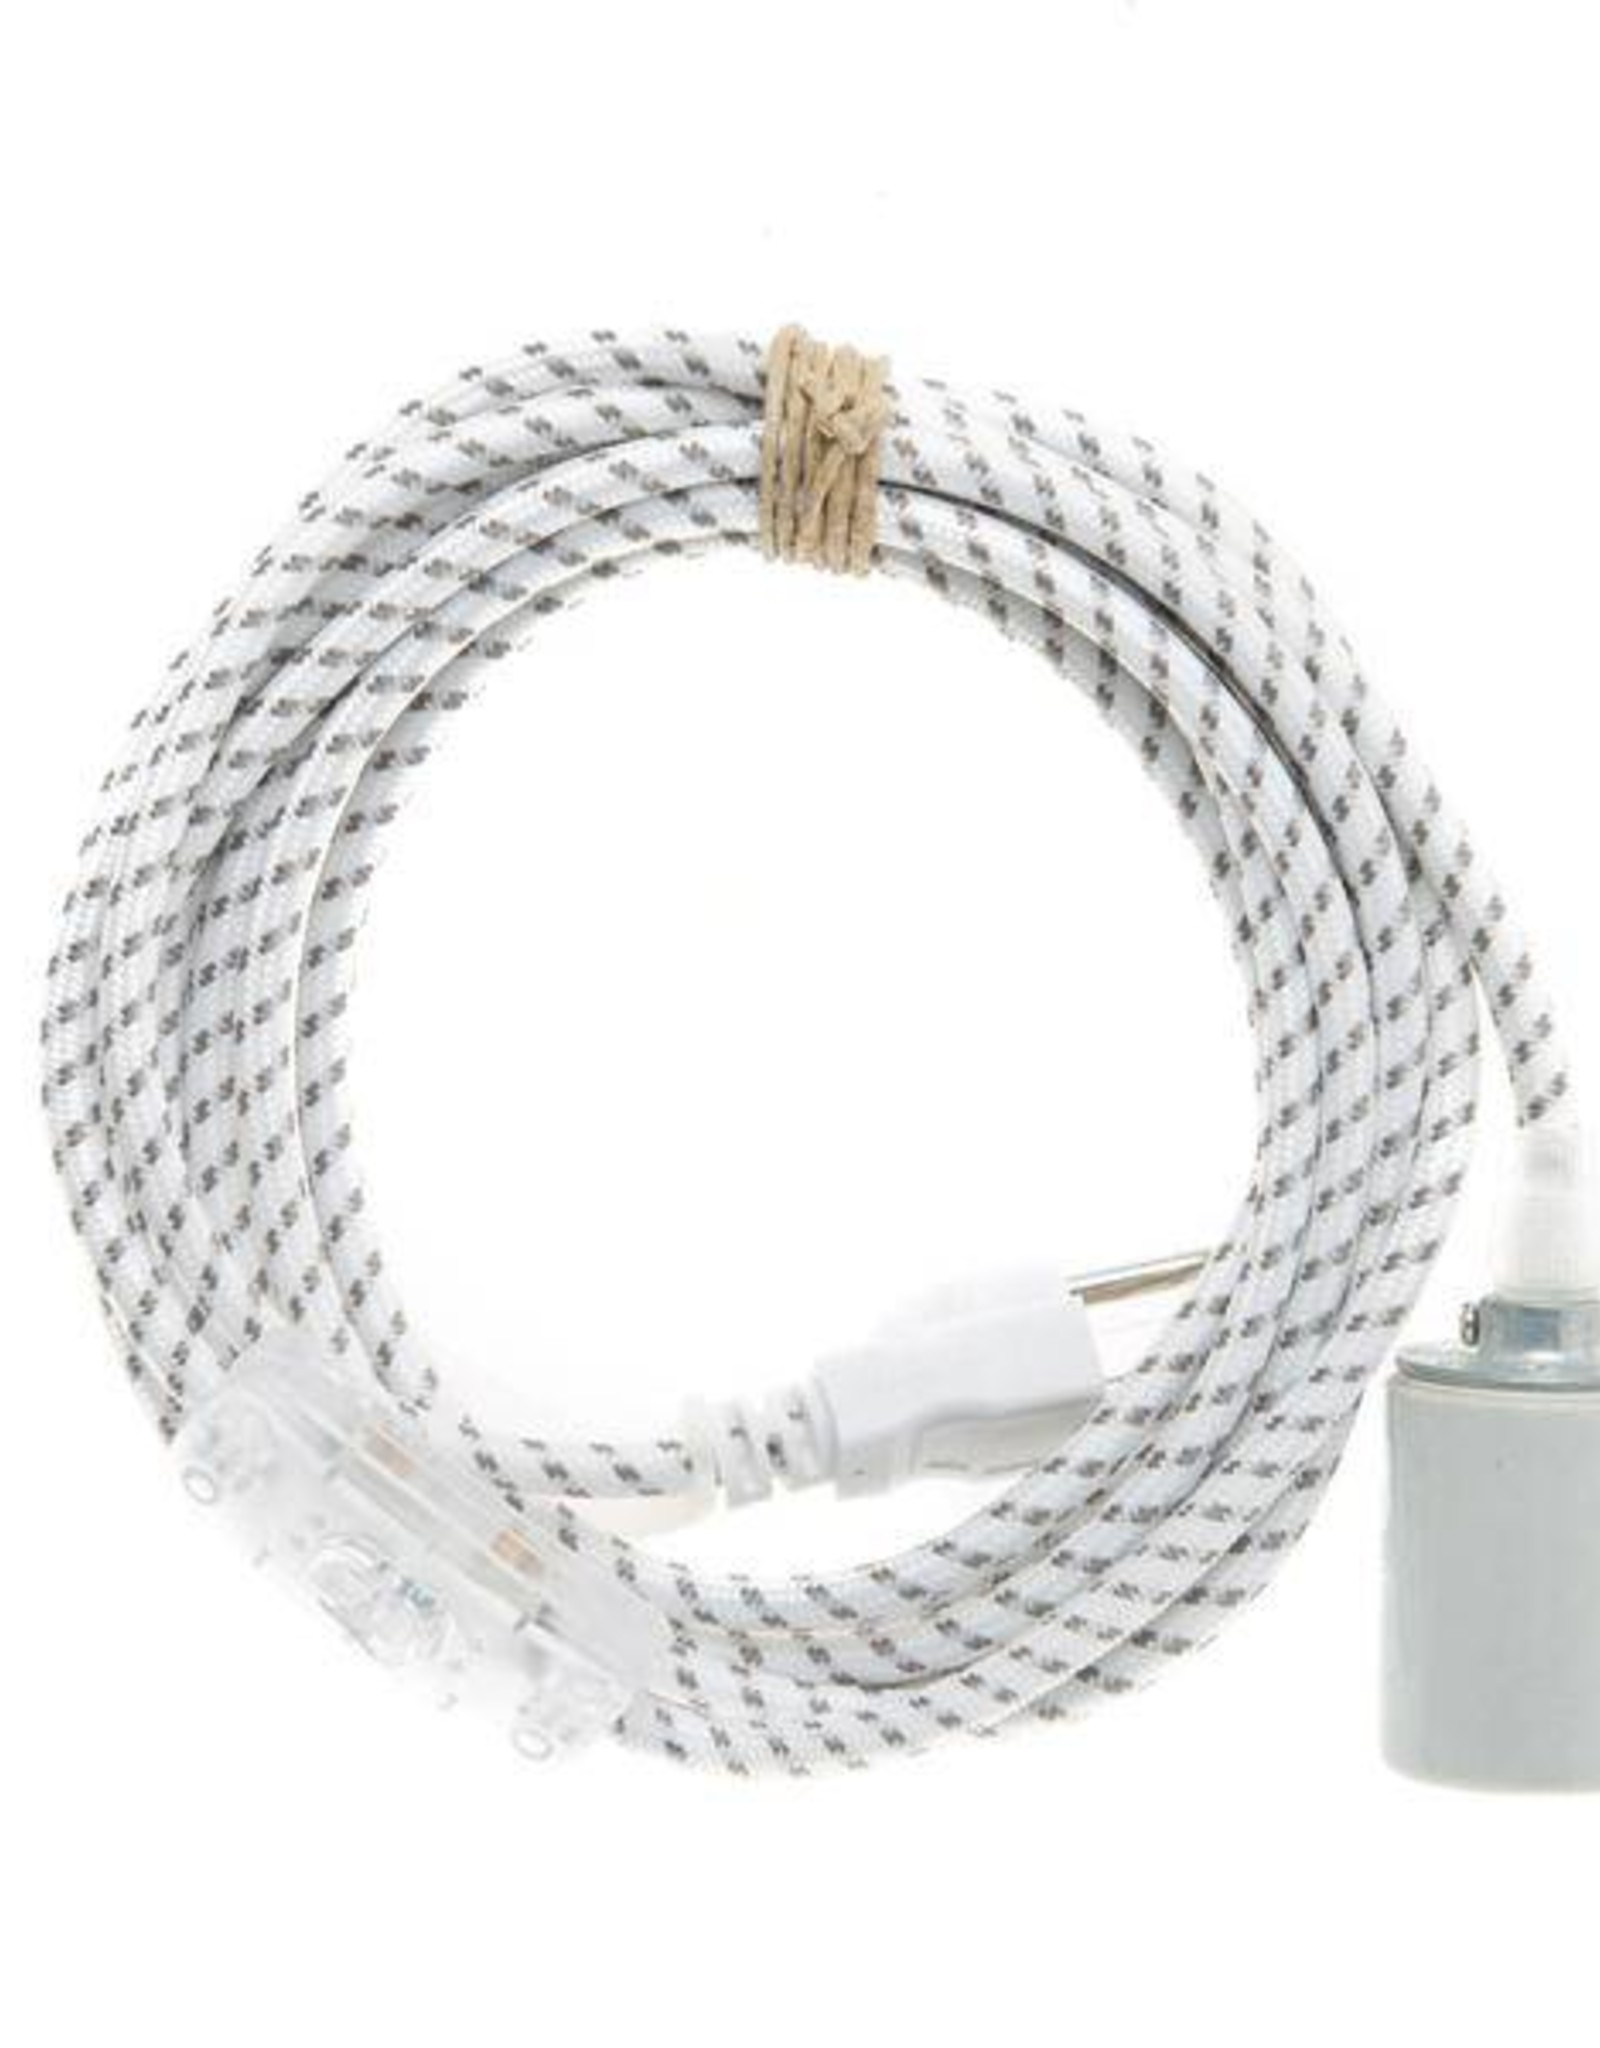 Color Cord Company Porcelain Plug-In Light Cord - White with Grey Dots